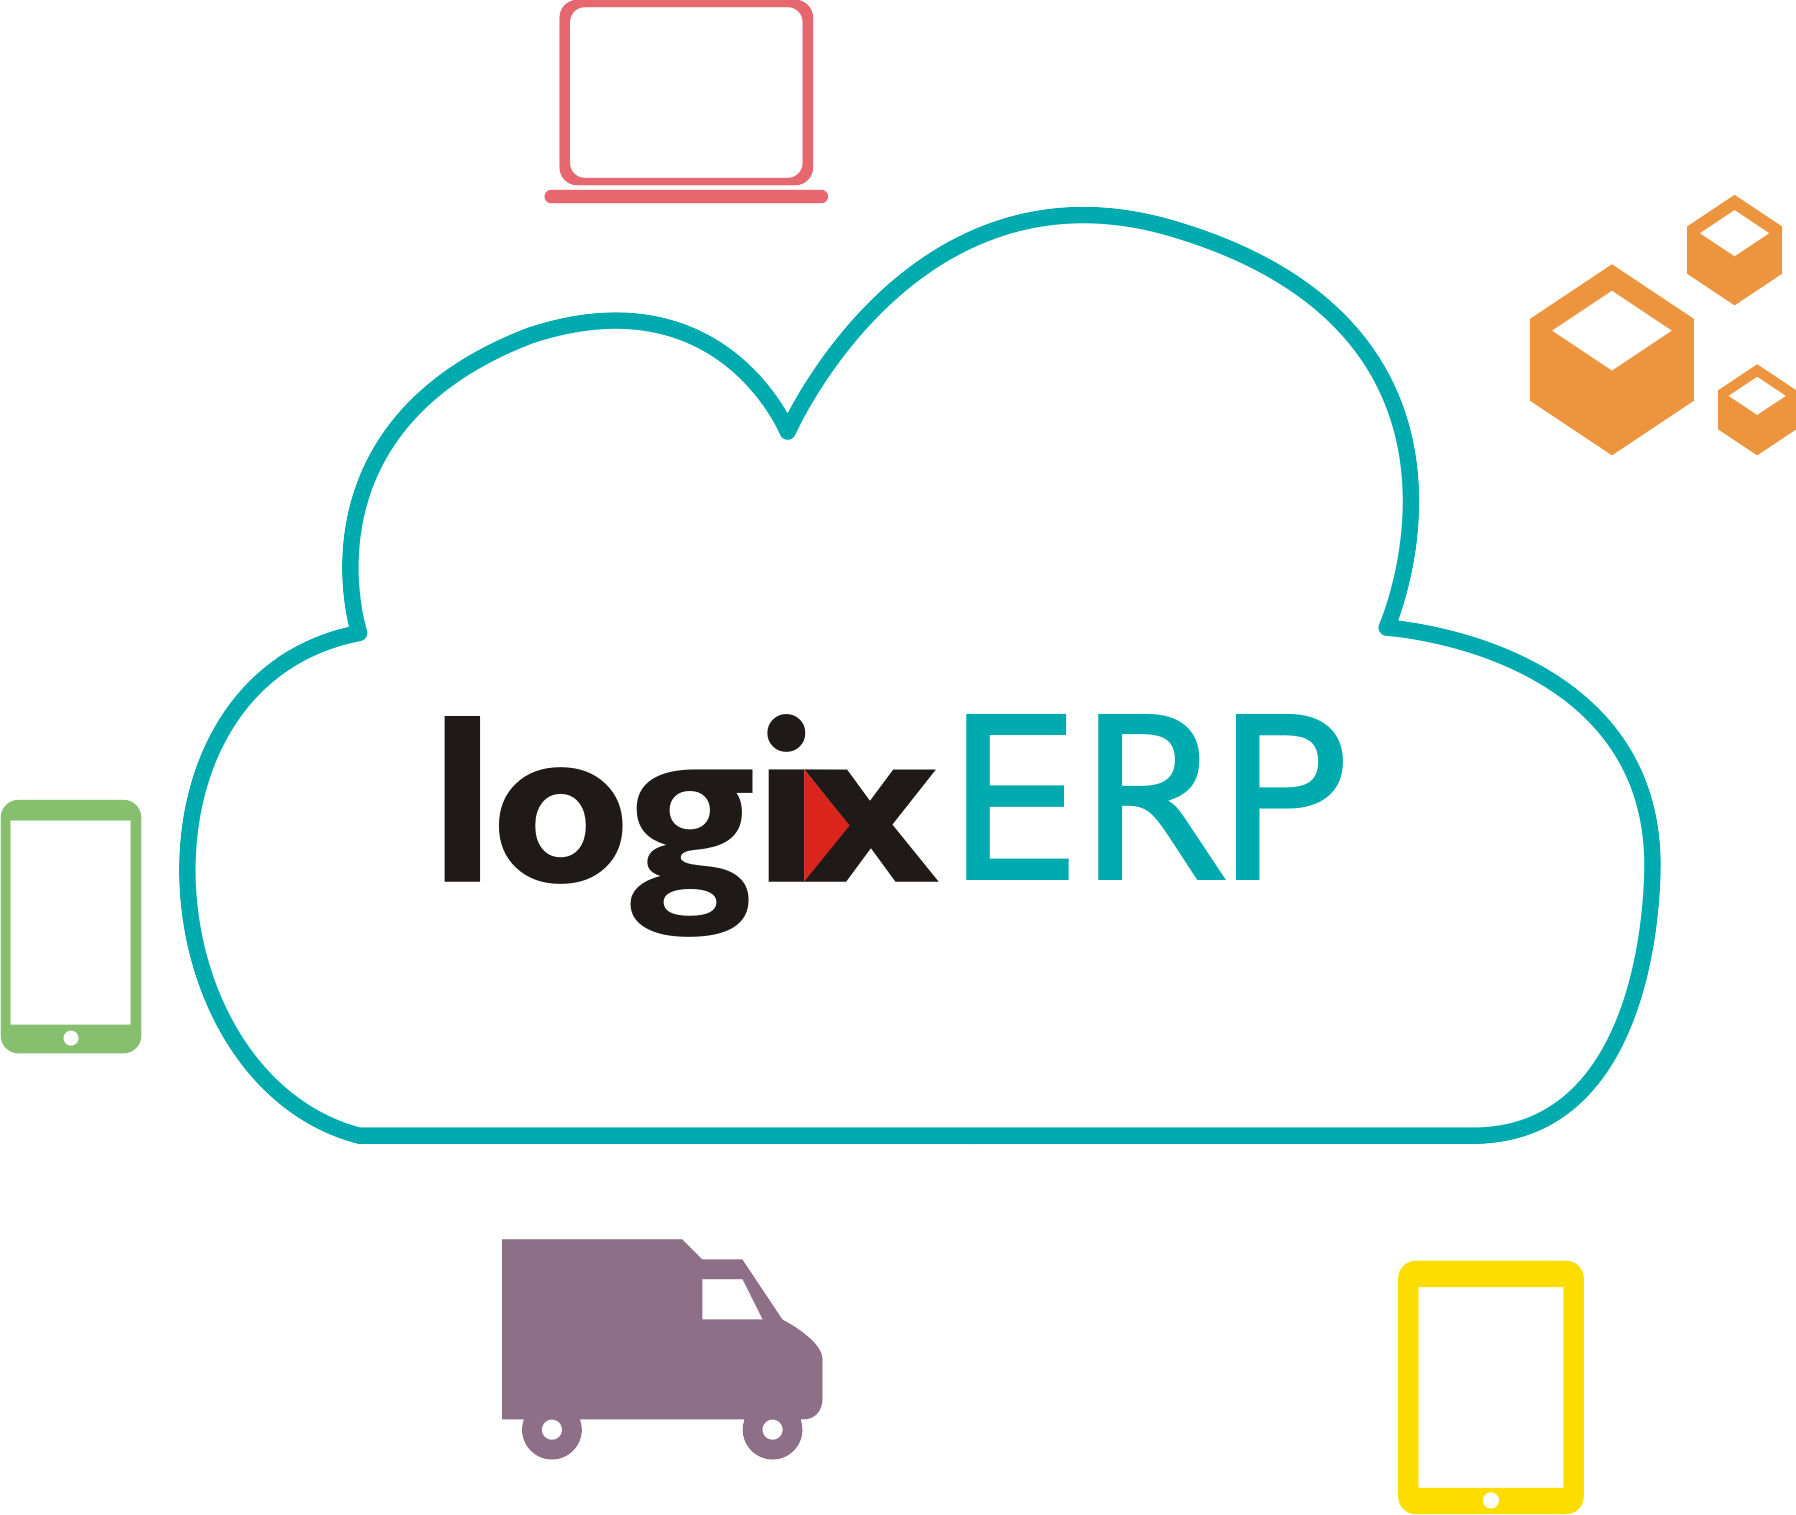 3PL Software, 3PL Systems, LogixGRID | Platform and Application for logistics management, LogixGRID | Platform and Application for logistics management